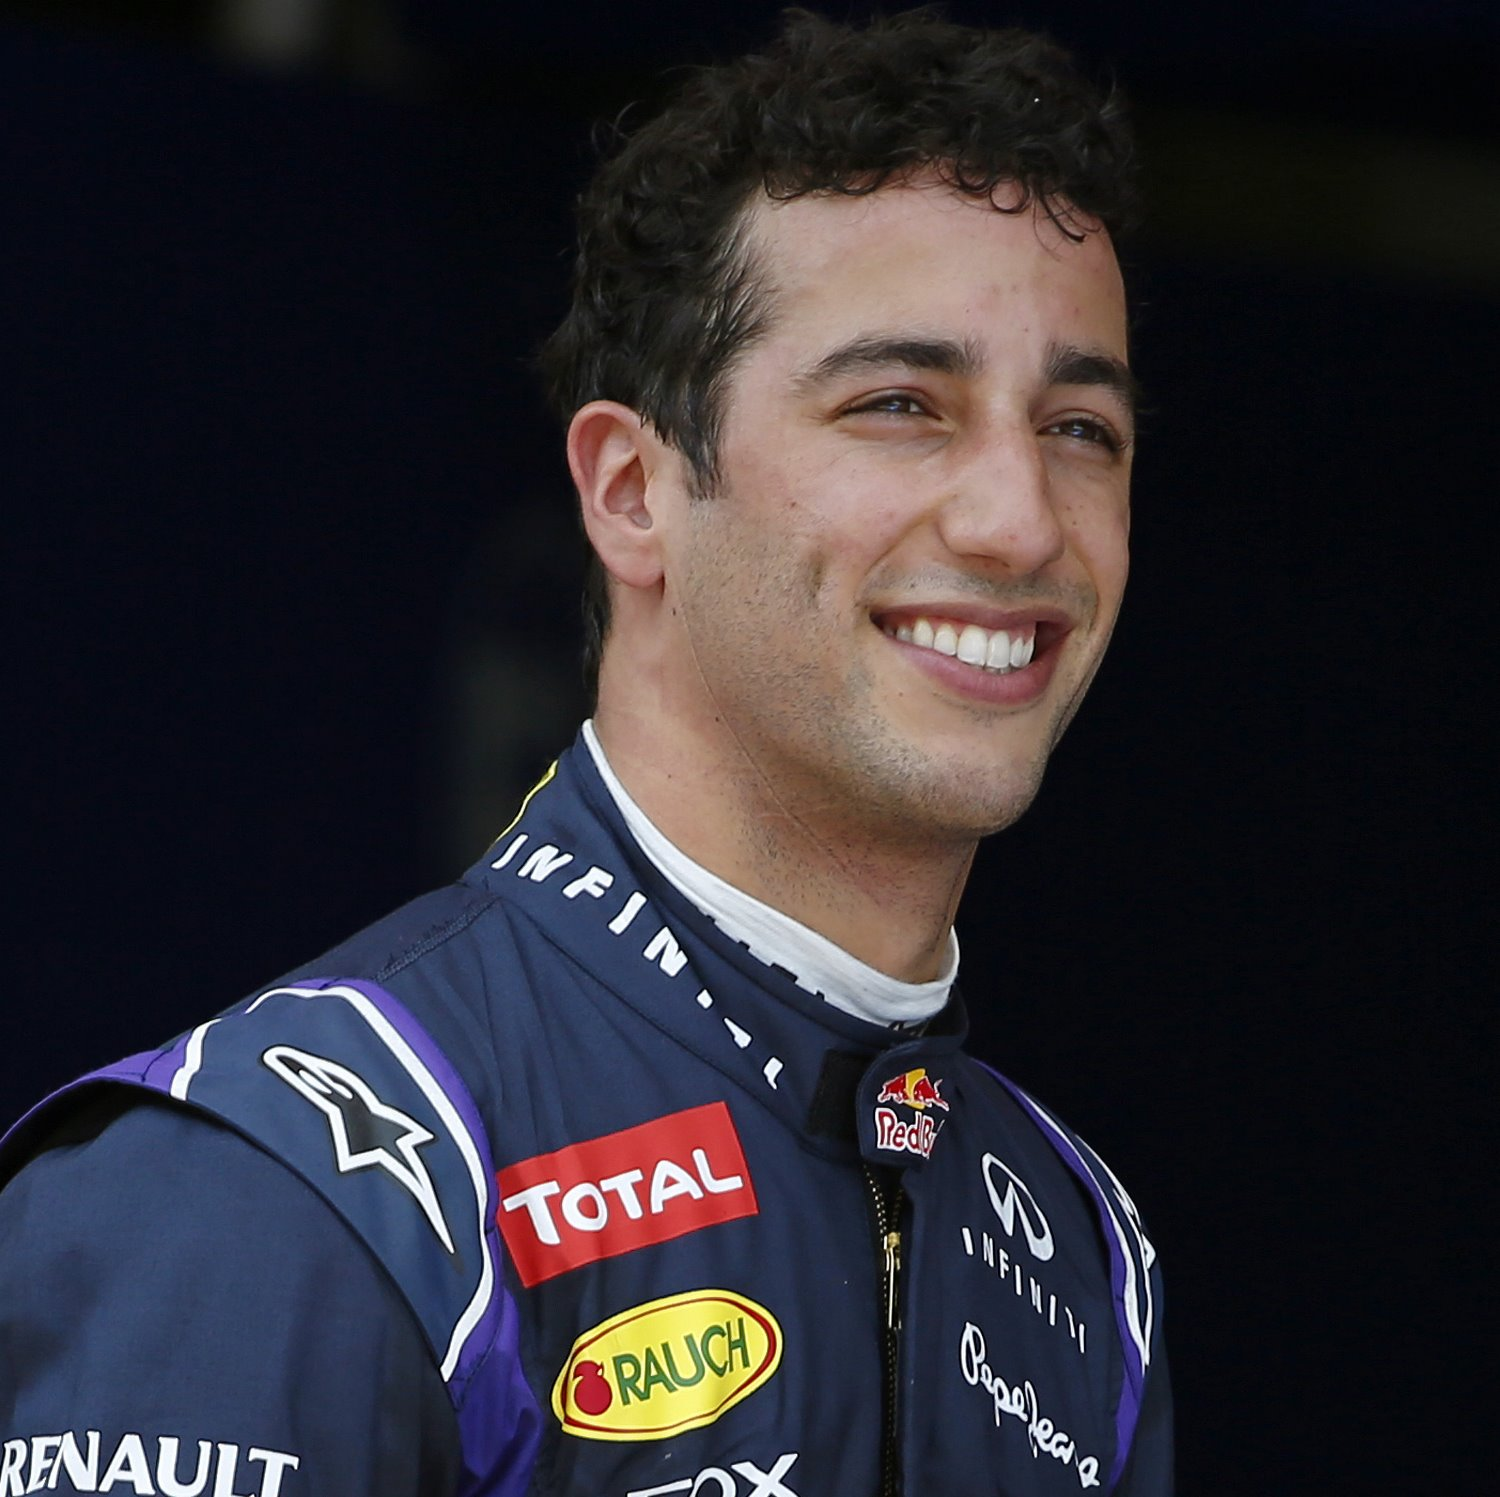 Daniel Ricciardo is the best